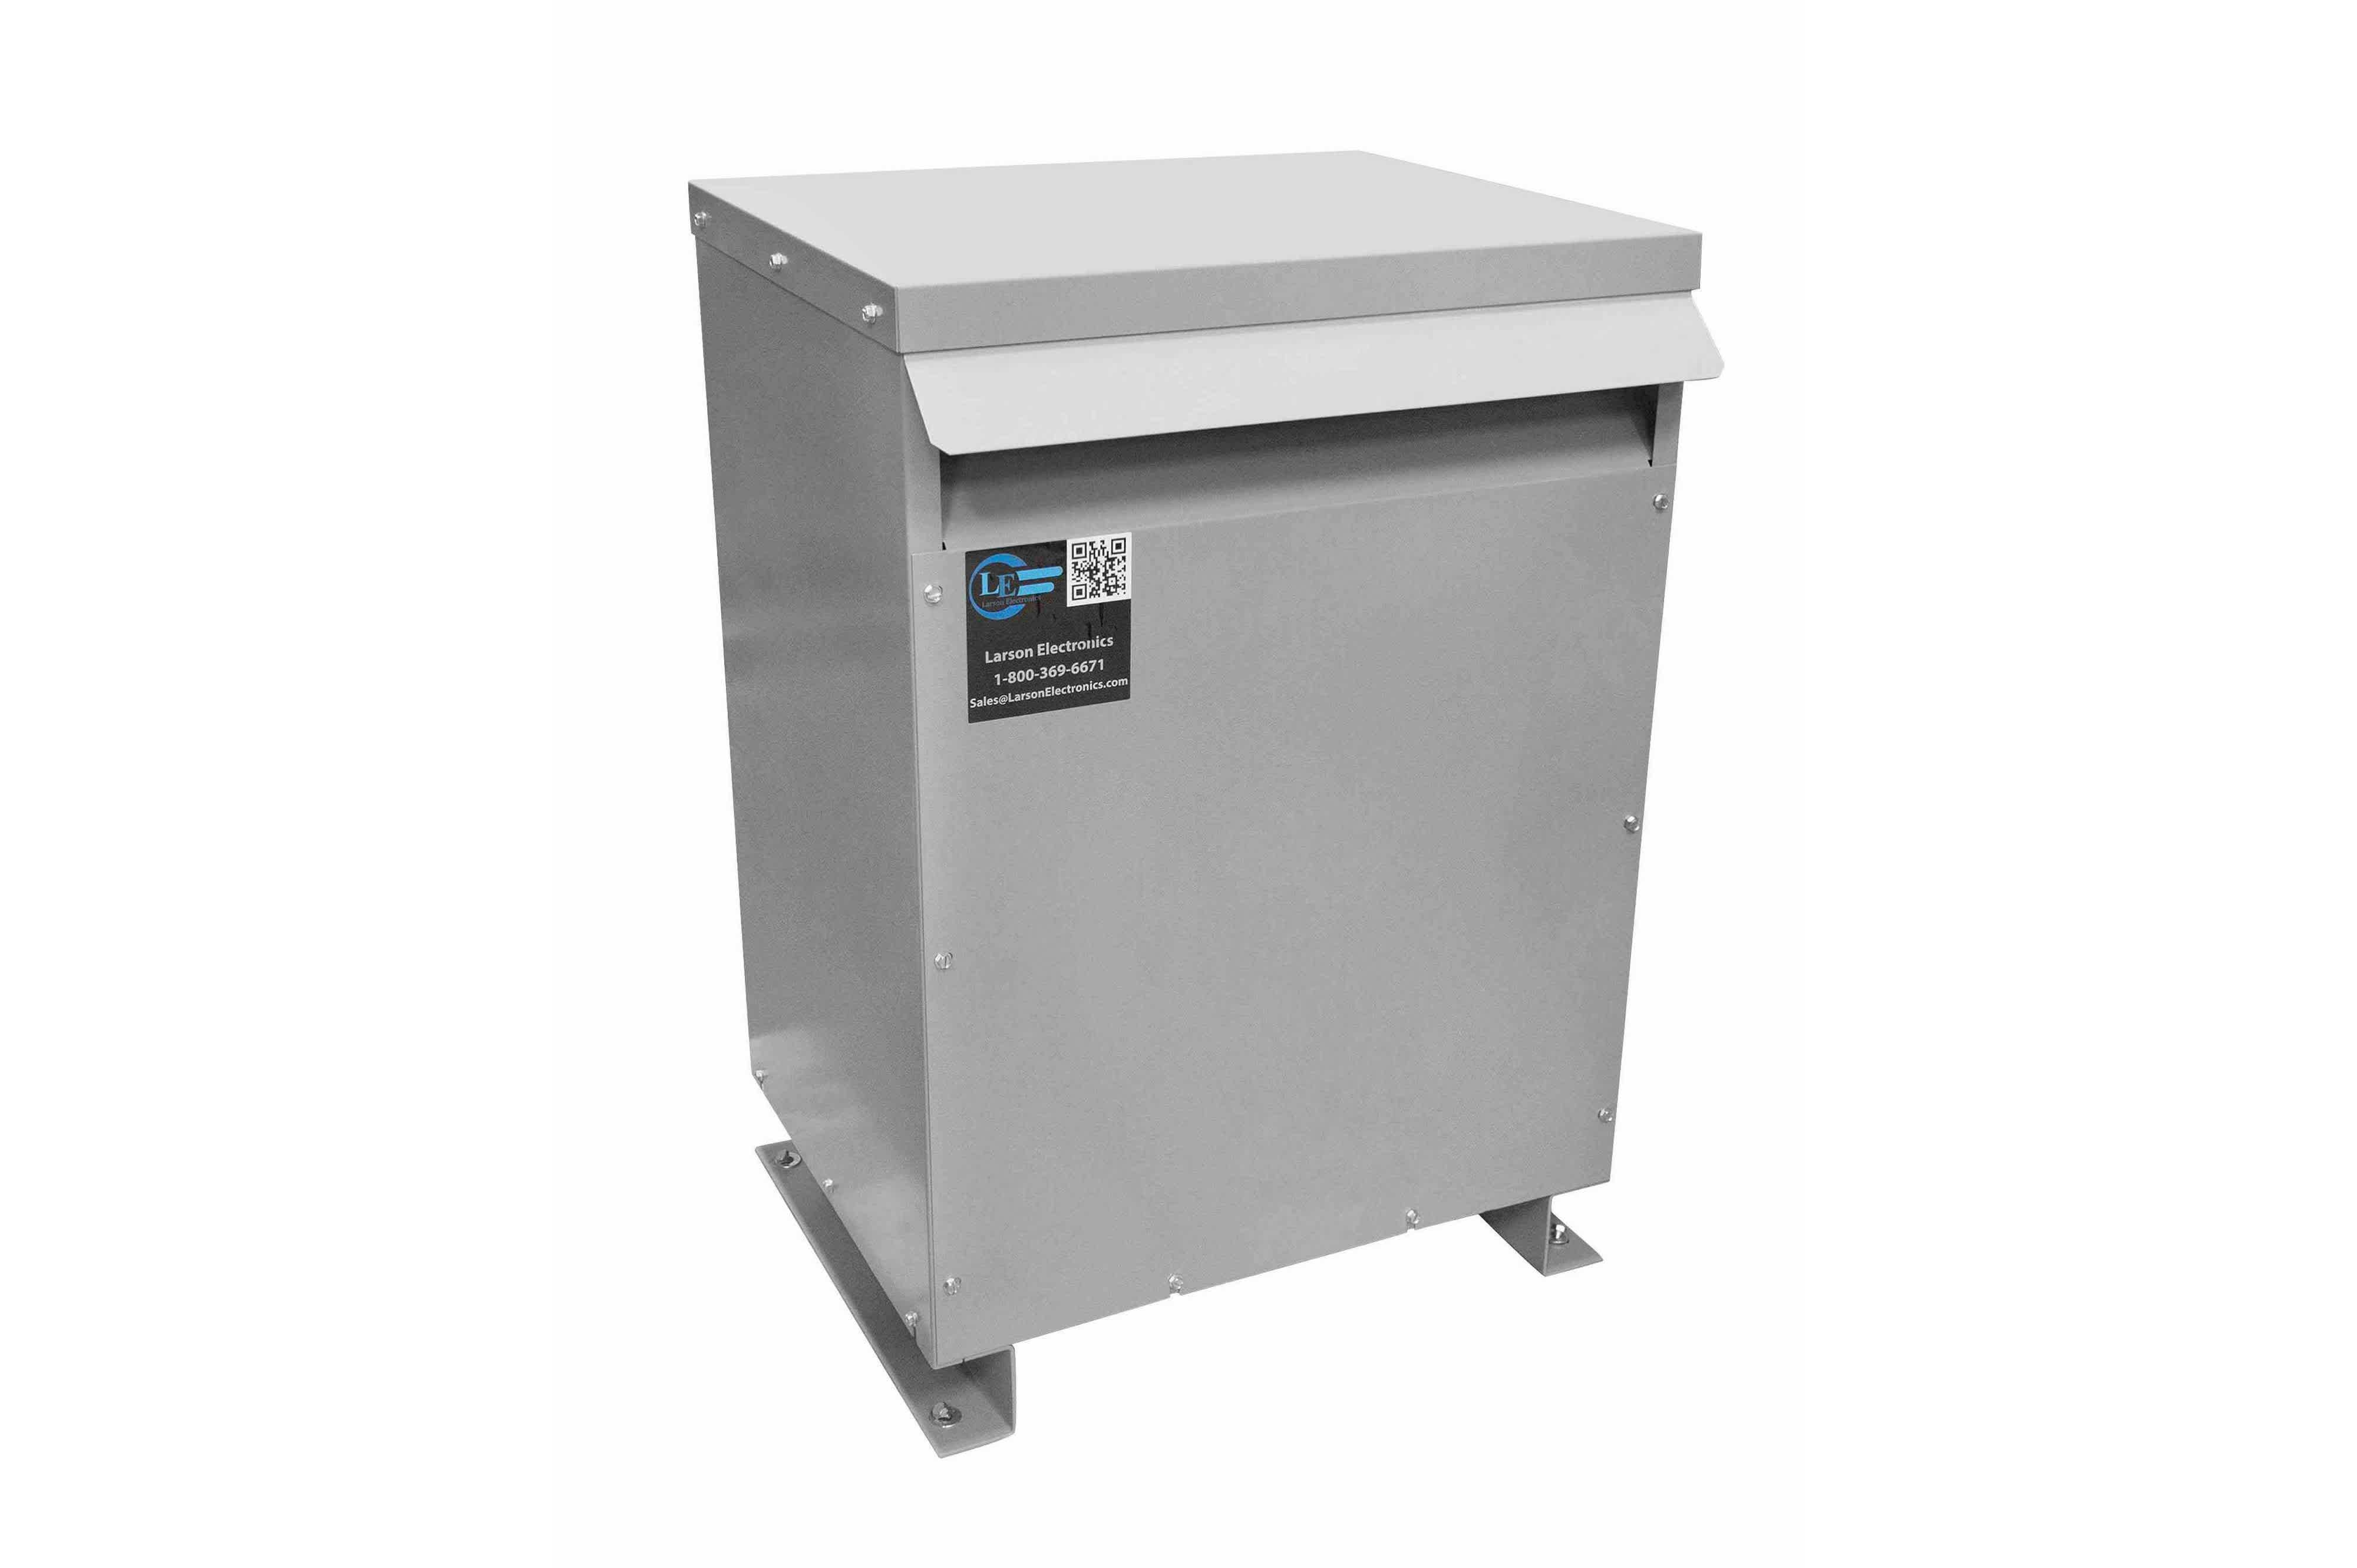 38 kVA 3PH Isolation Transformer, 240V Wye Primary, 208Y/120 Wye-N Secondary, N3R, Ventilated, 60 Hz